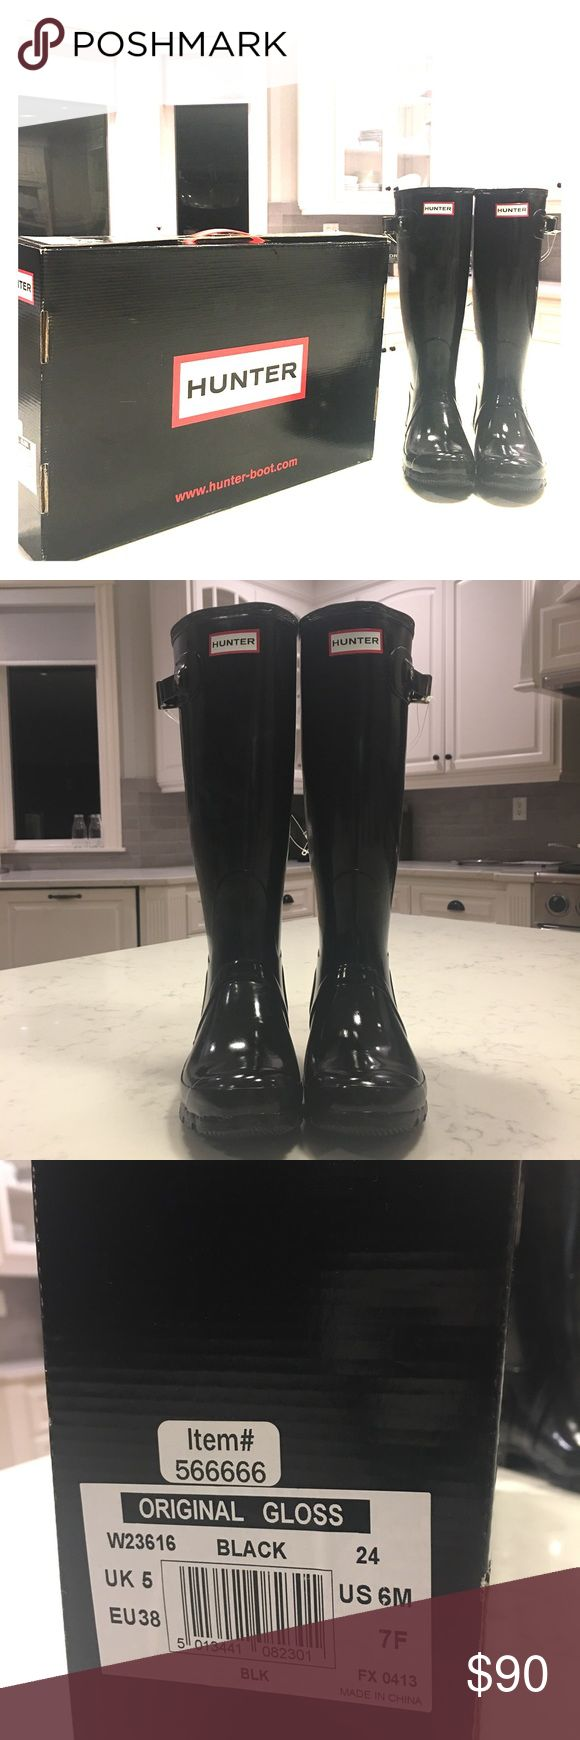 Hunter original gloss NWY size 6 boots These is a pair of original gloss black NWT size 6 hunter boots. Some scratch marks but never been worn. These have been sitting inside the box for months. Hunter Boots Shoes Winter & Rain Boots